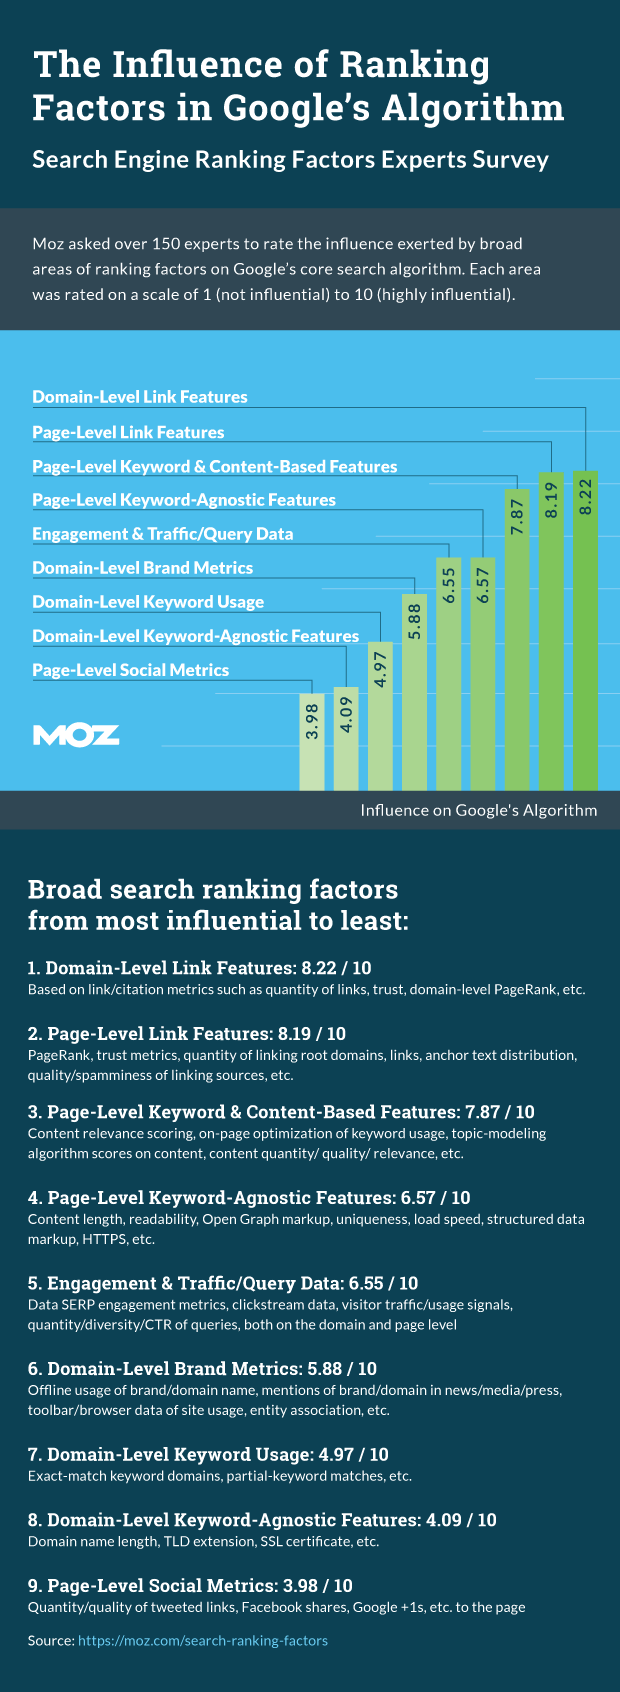 SEO Ranking Factors in search results